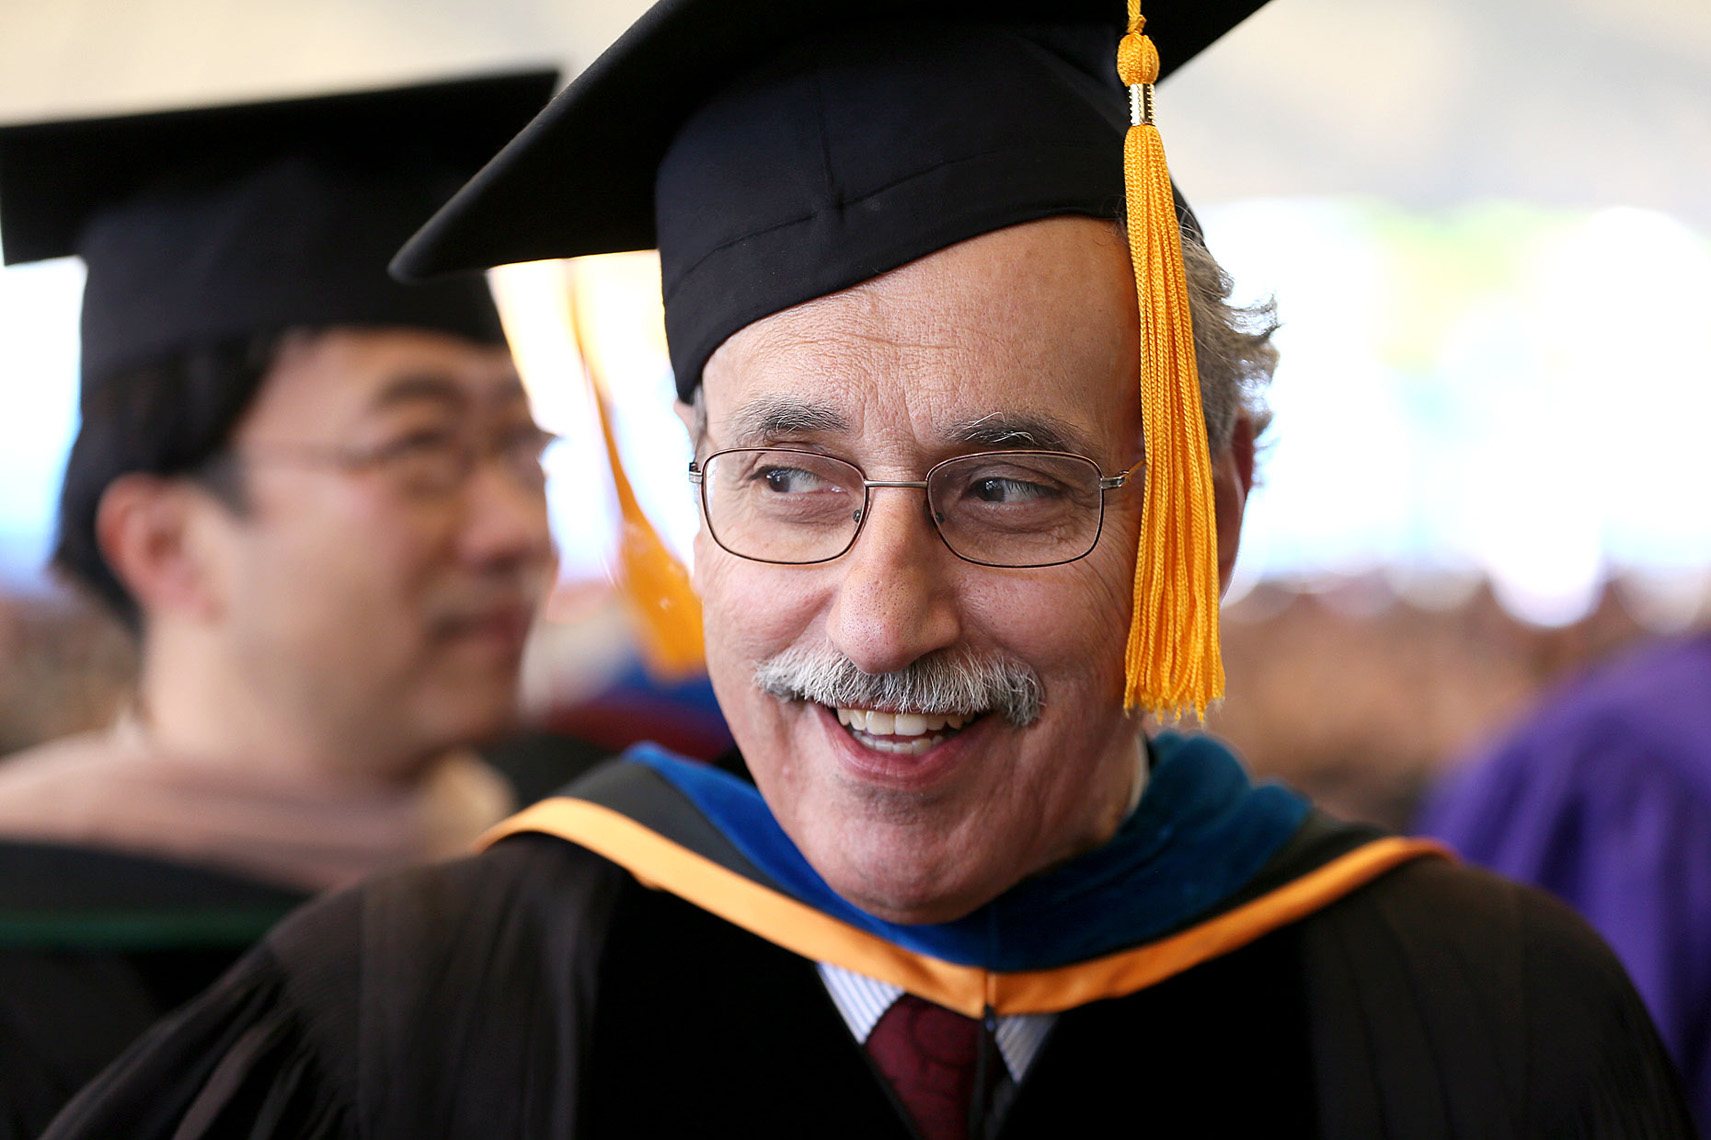 A Suffolk University professor in cap and gown marches into graduation services.